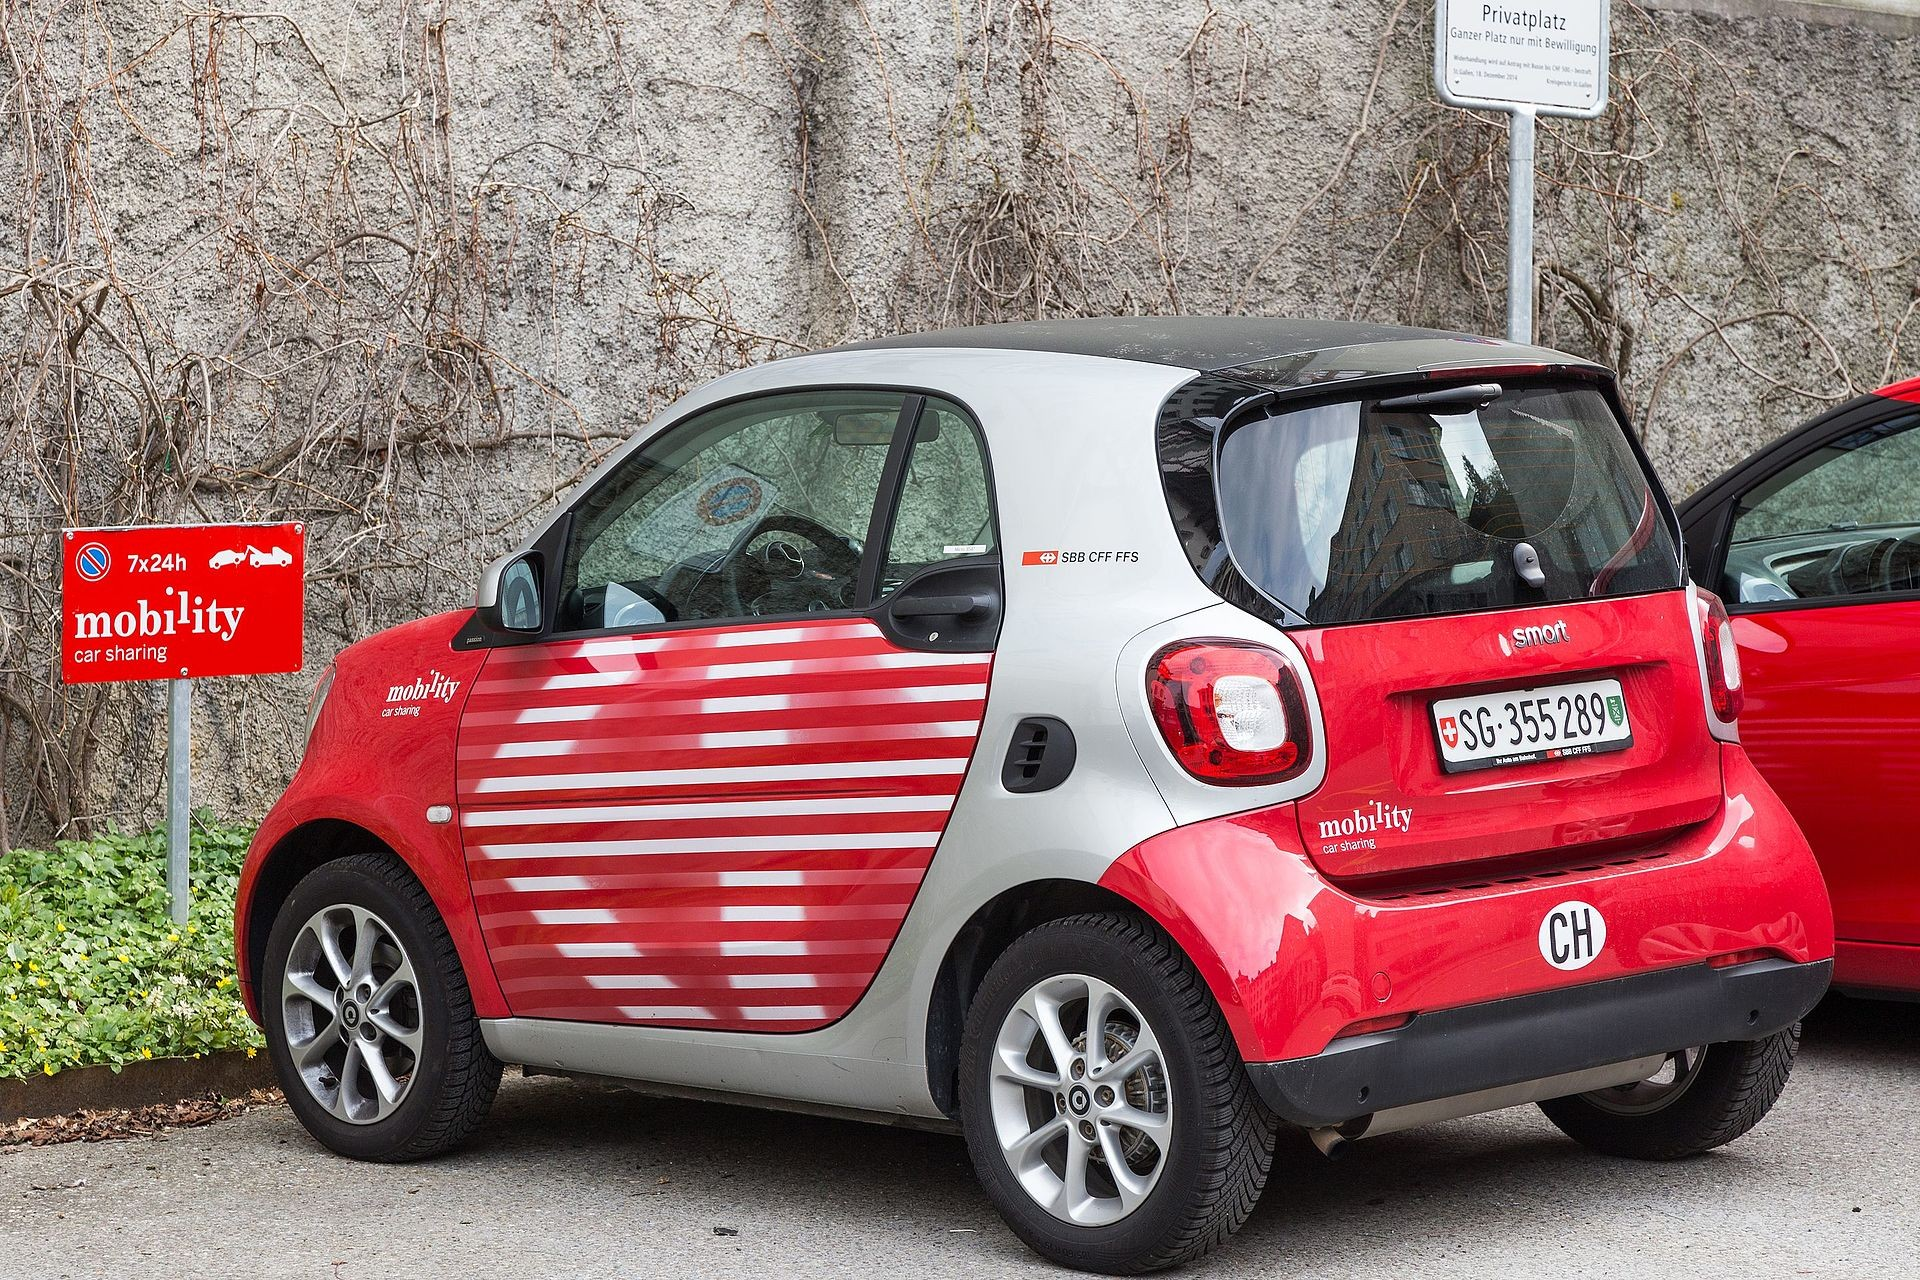 Does one really use less energy when sharing a car instead of owning one?